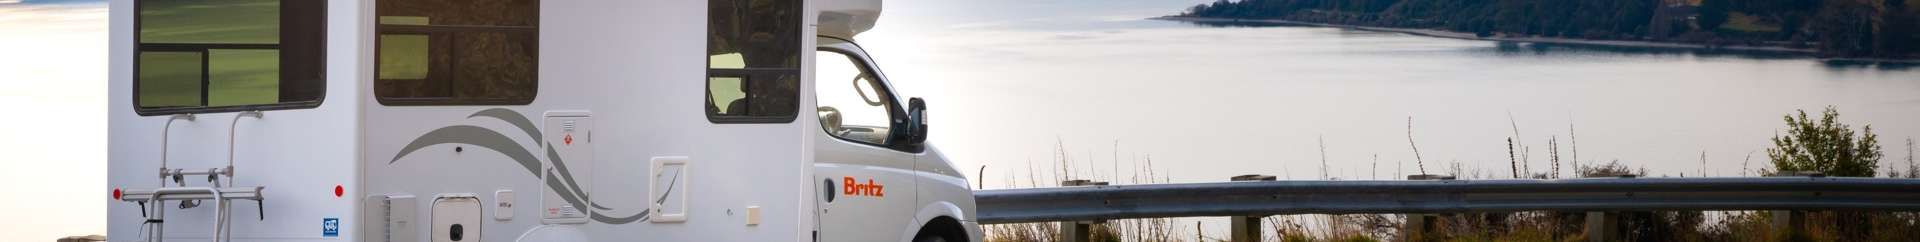 Flexible Bookings with Britz